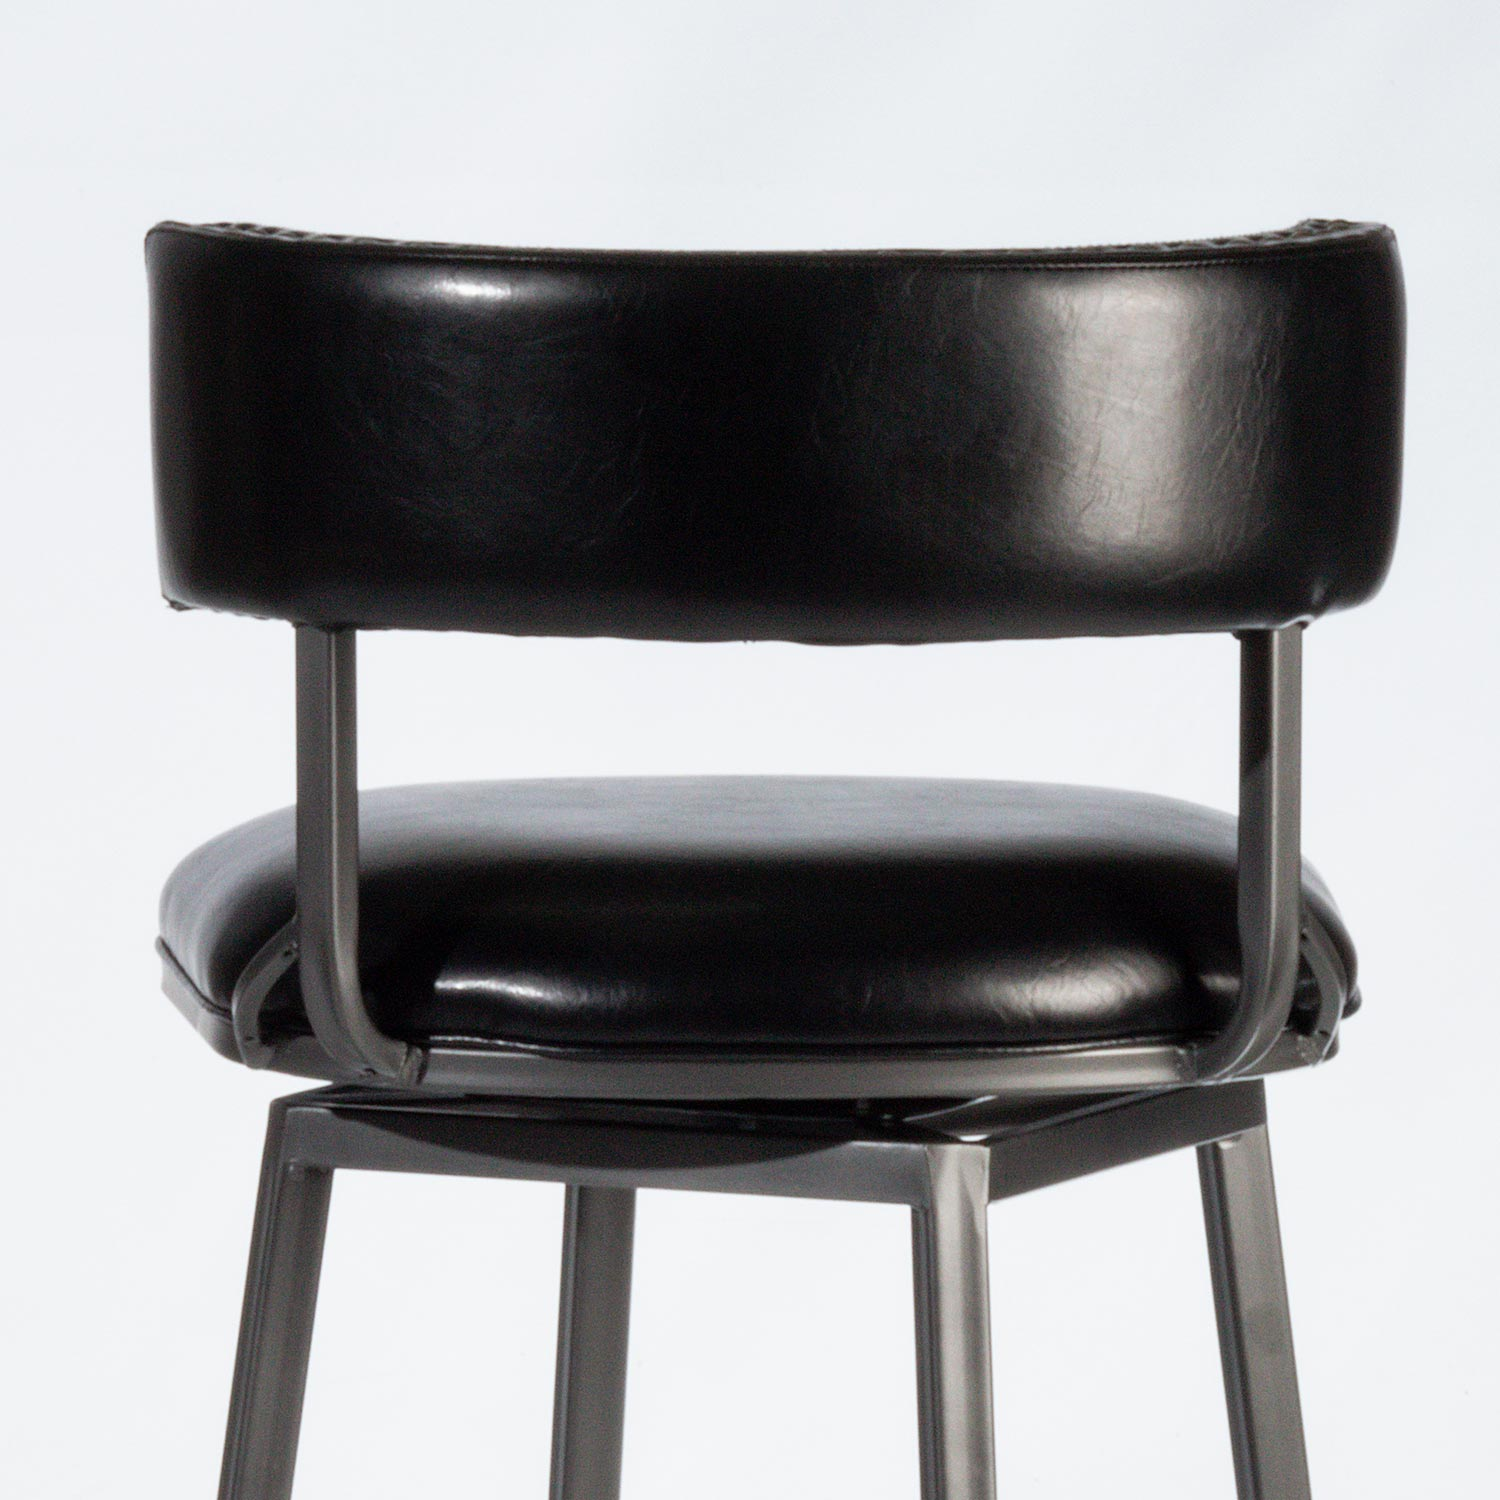 Hillsdale Kinsella Commercial Grade Swivel Counter Stool - Charcoal